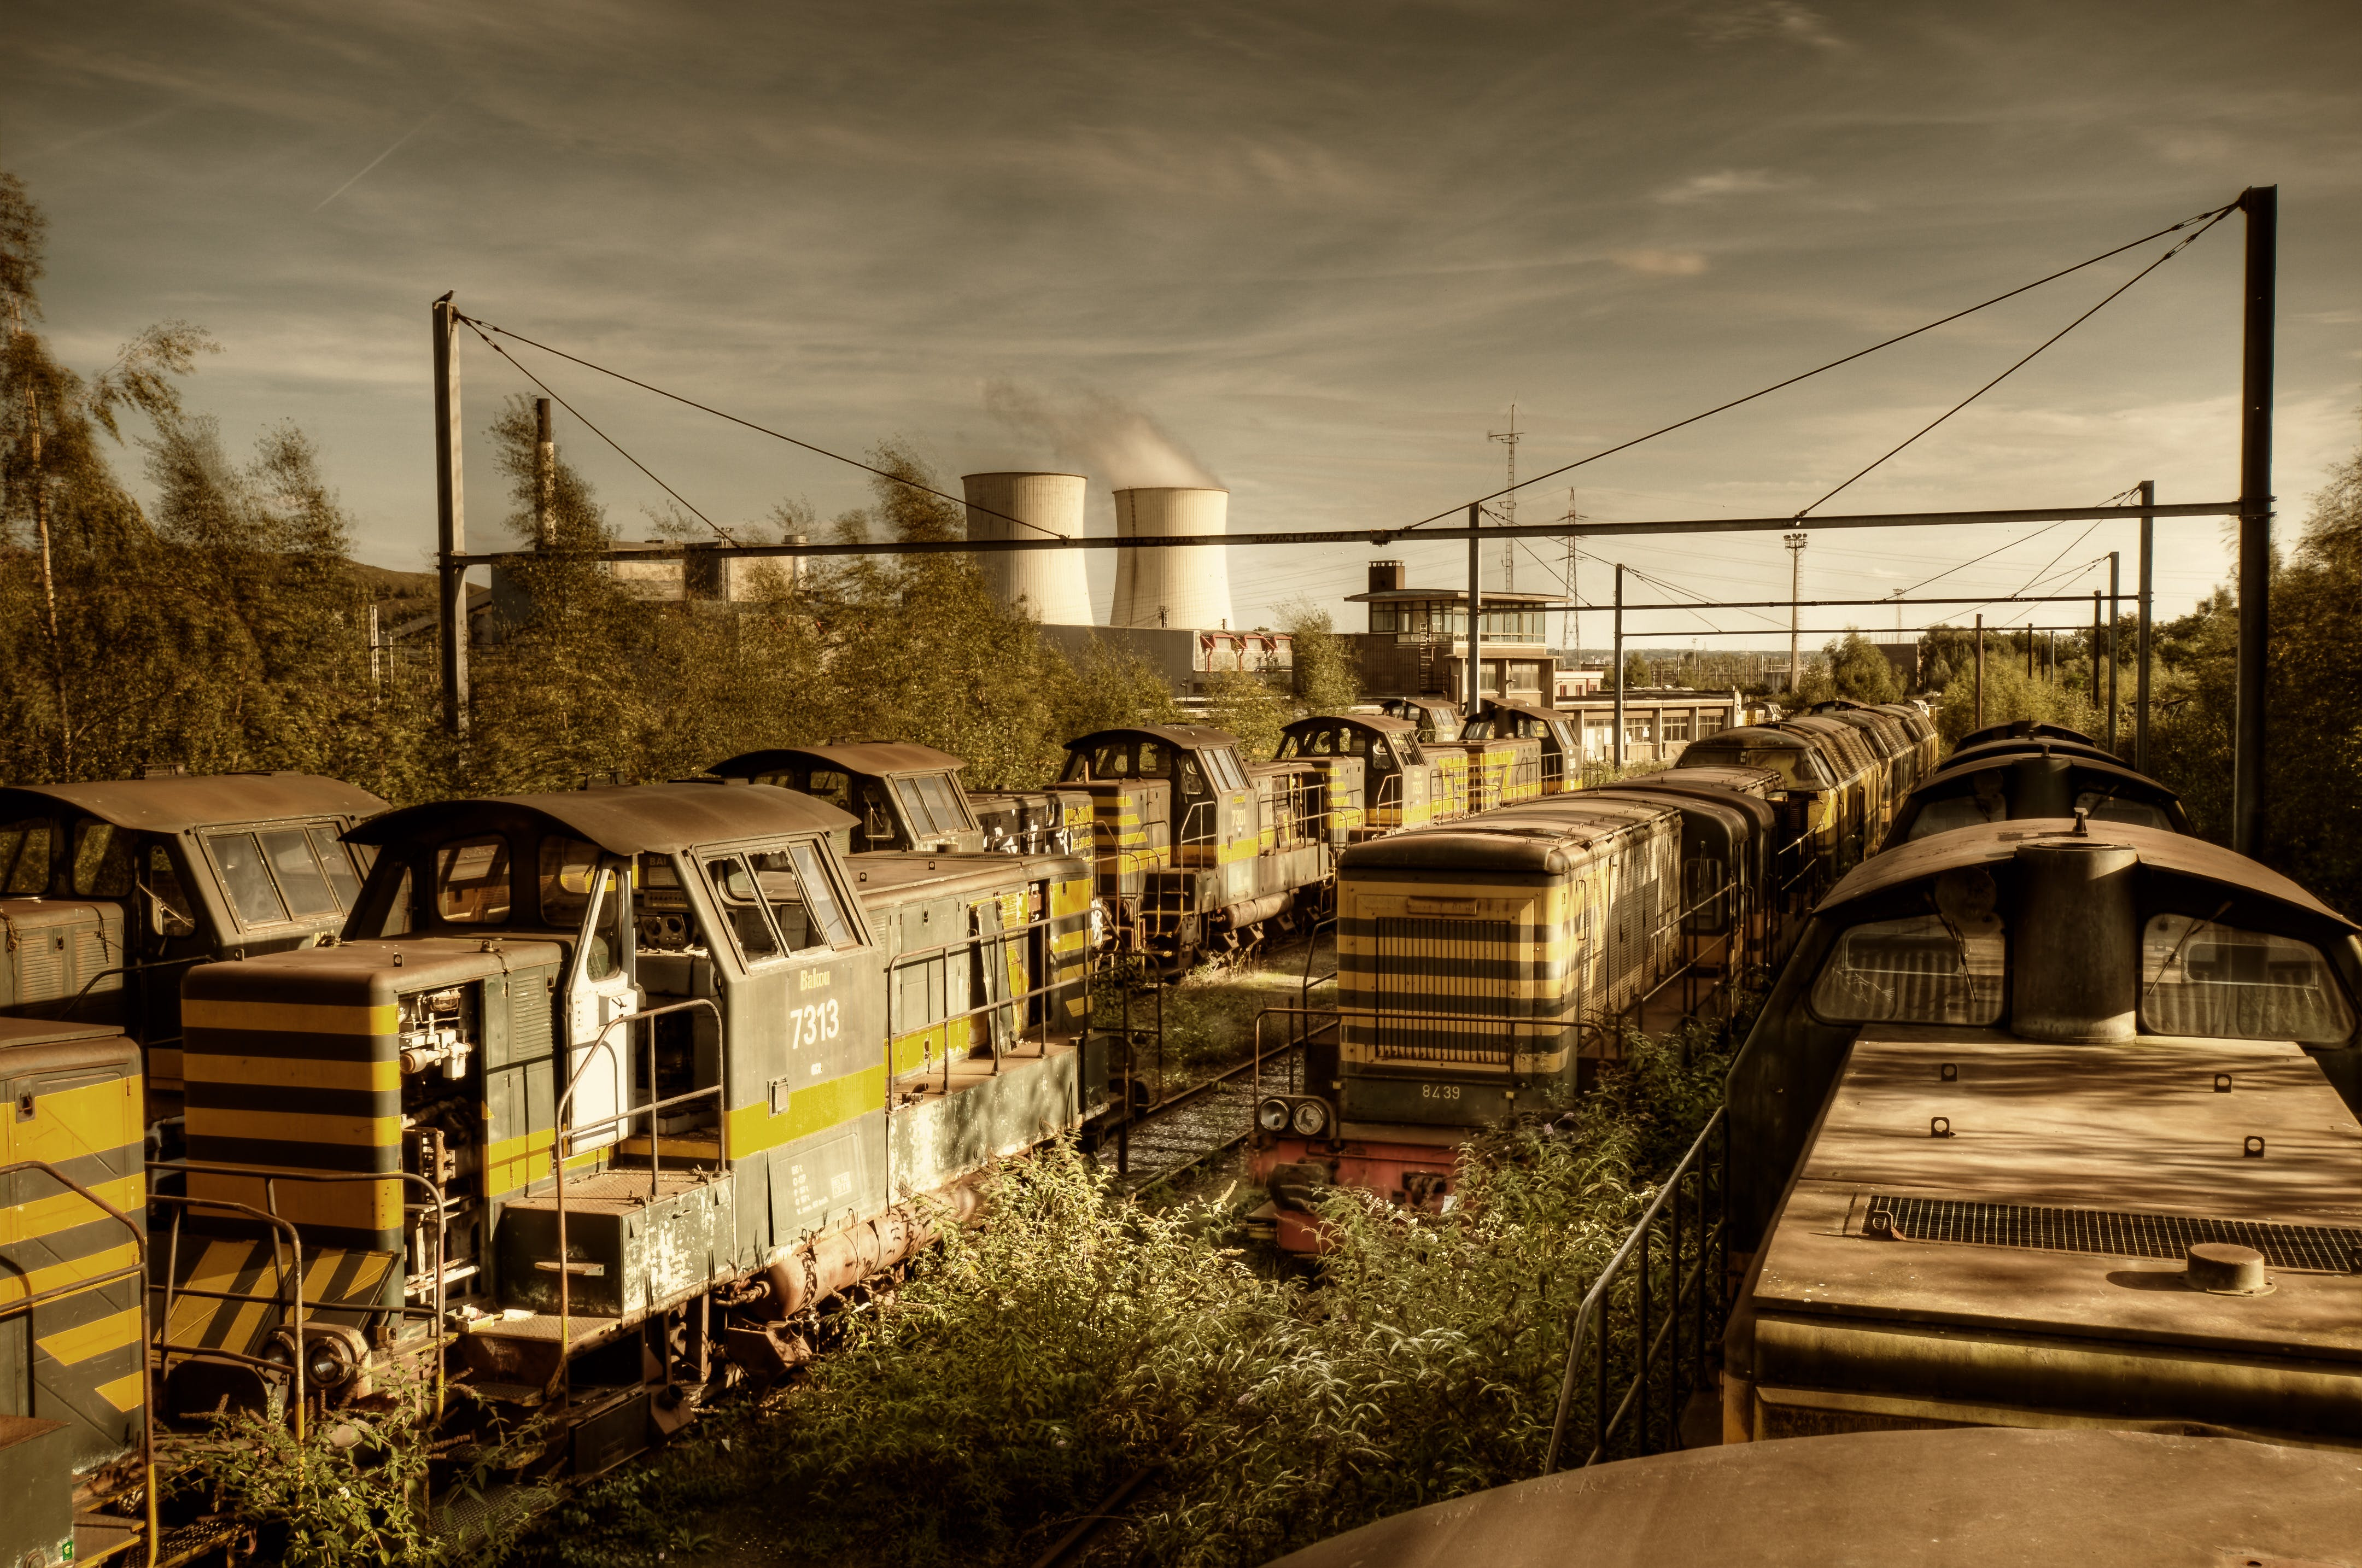 Free stock photo of sky, rooftop, rails, rust